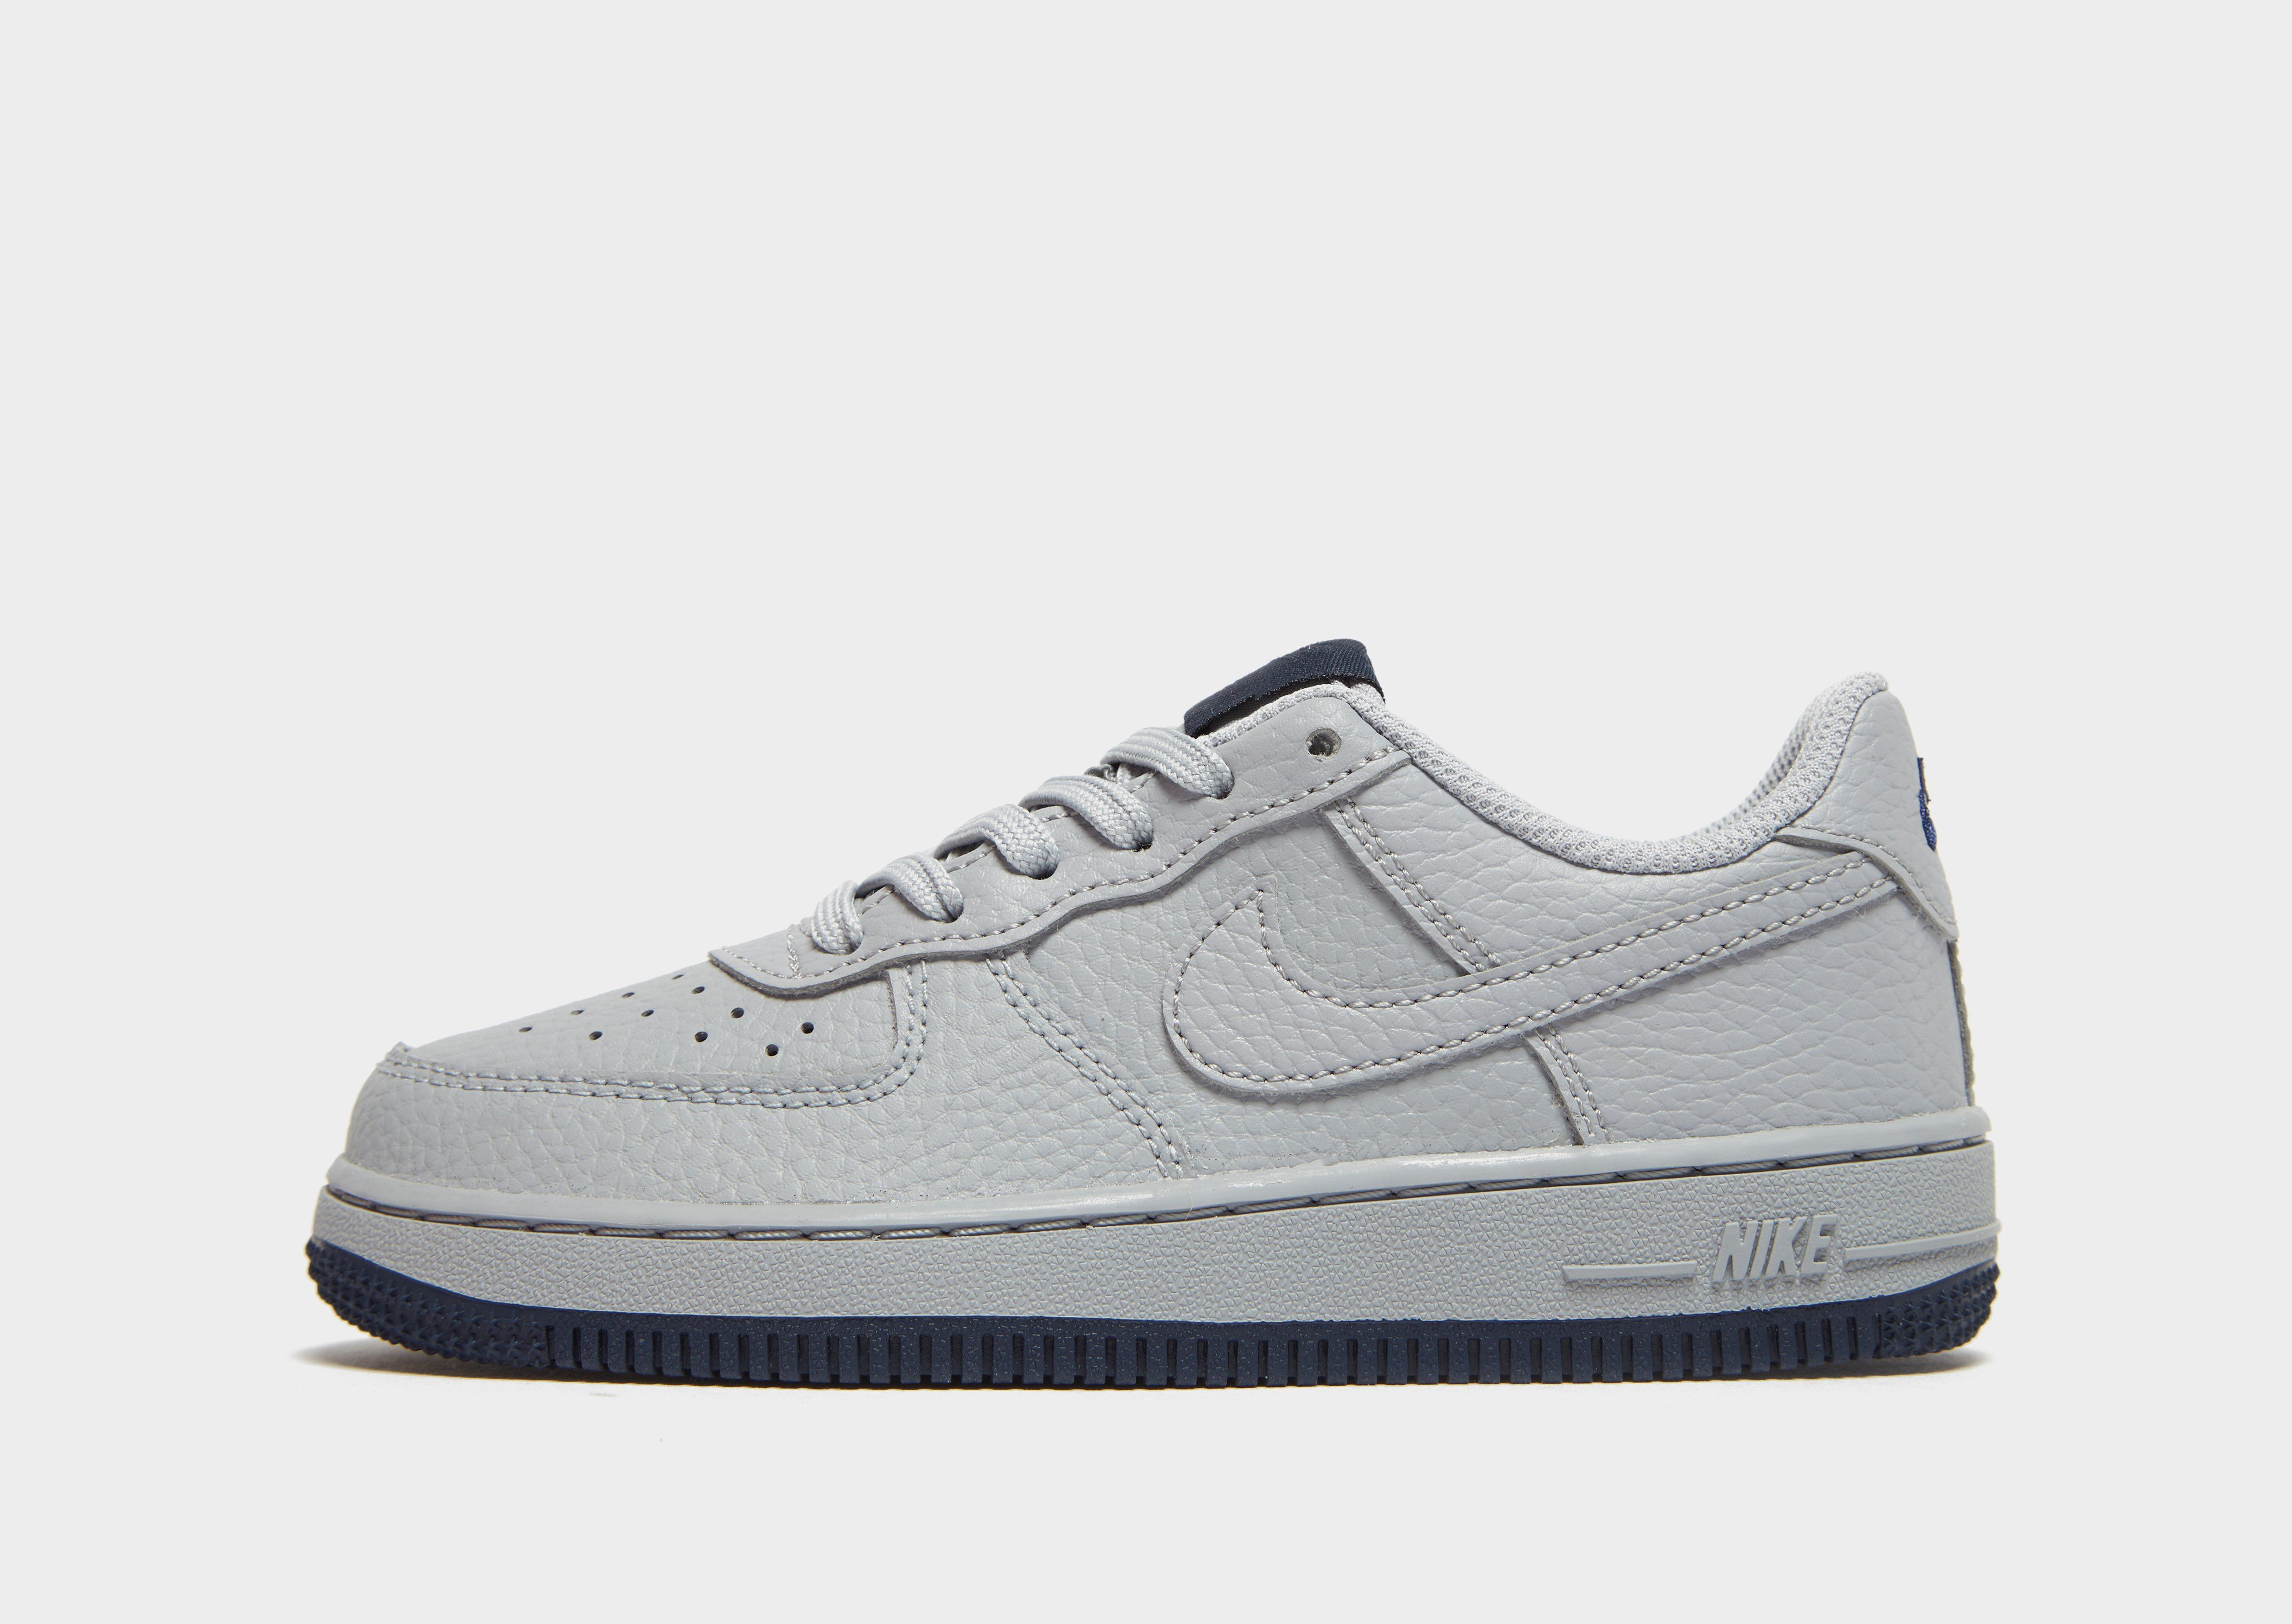 new style ef4a1 df68b Nike Force 1 LV8 Younger Kids' Shoe | JD Sports